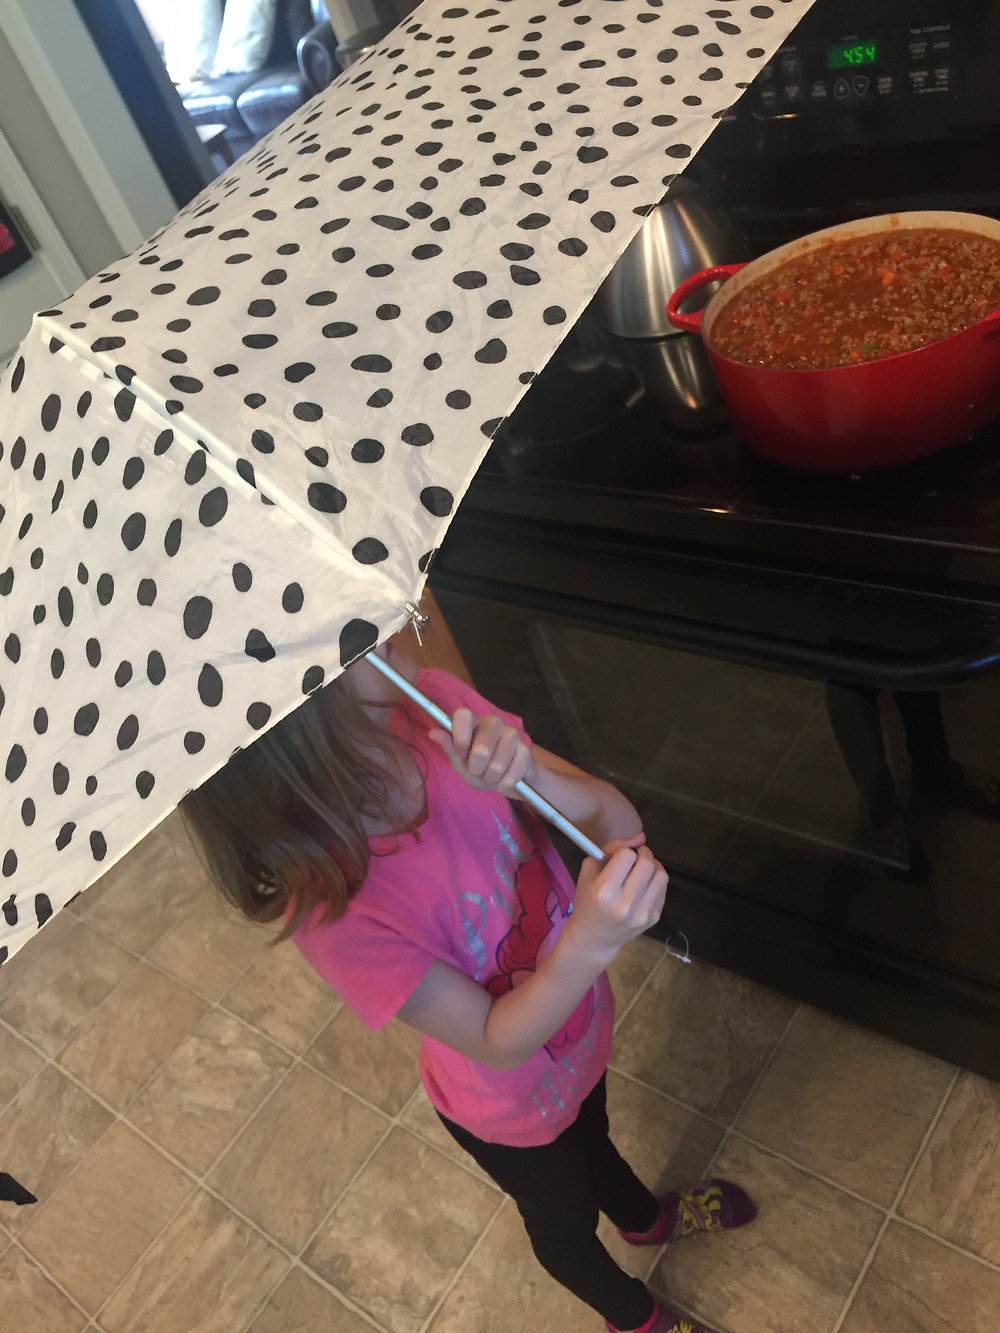 Rain or shine, this always brings them to the kitchen!